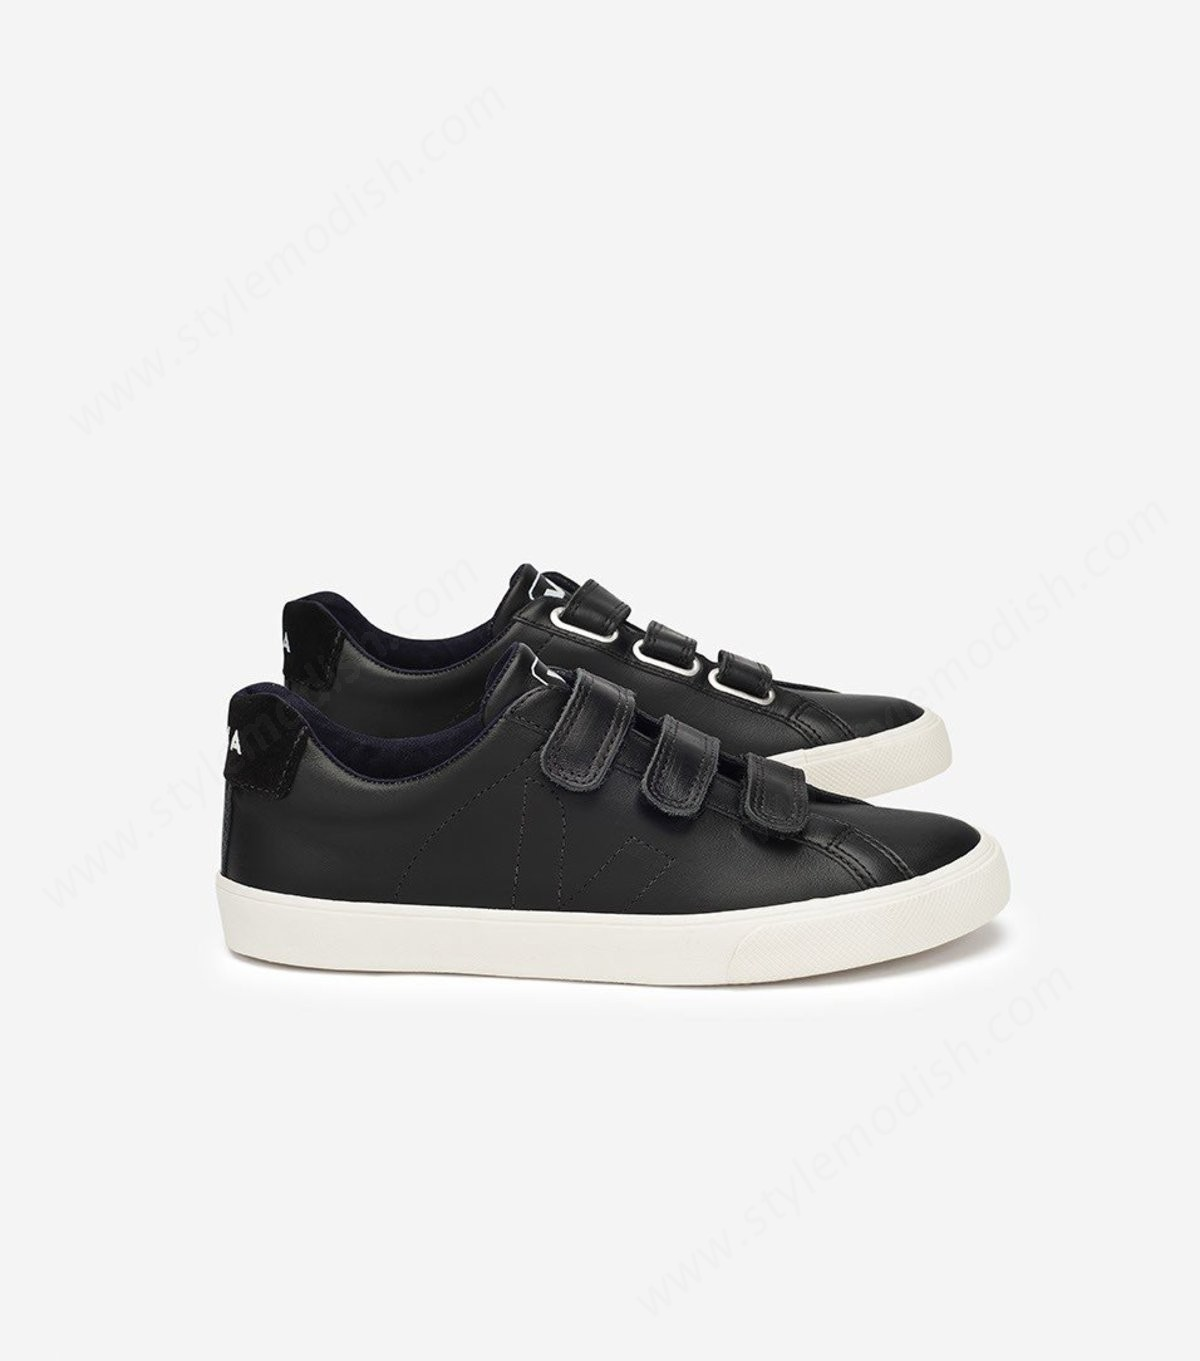 Womens's Veja Esplar Low Leather Locks Sneaker - Black - -0